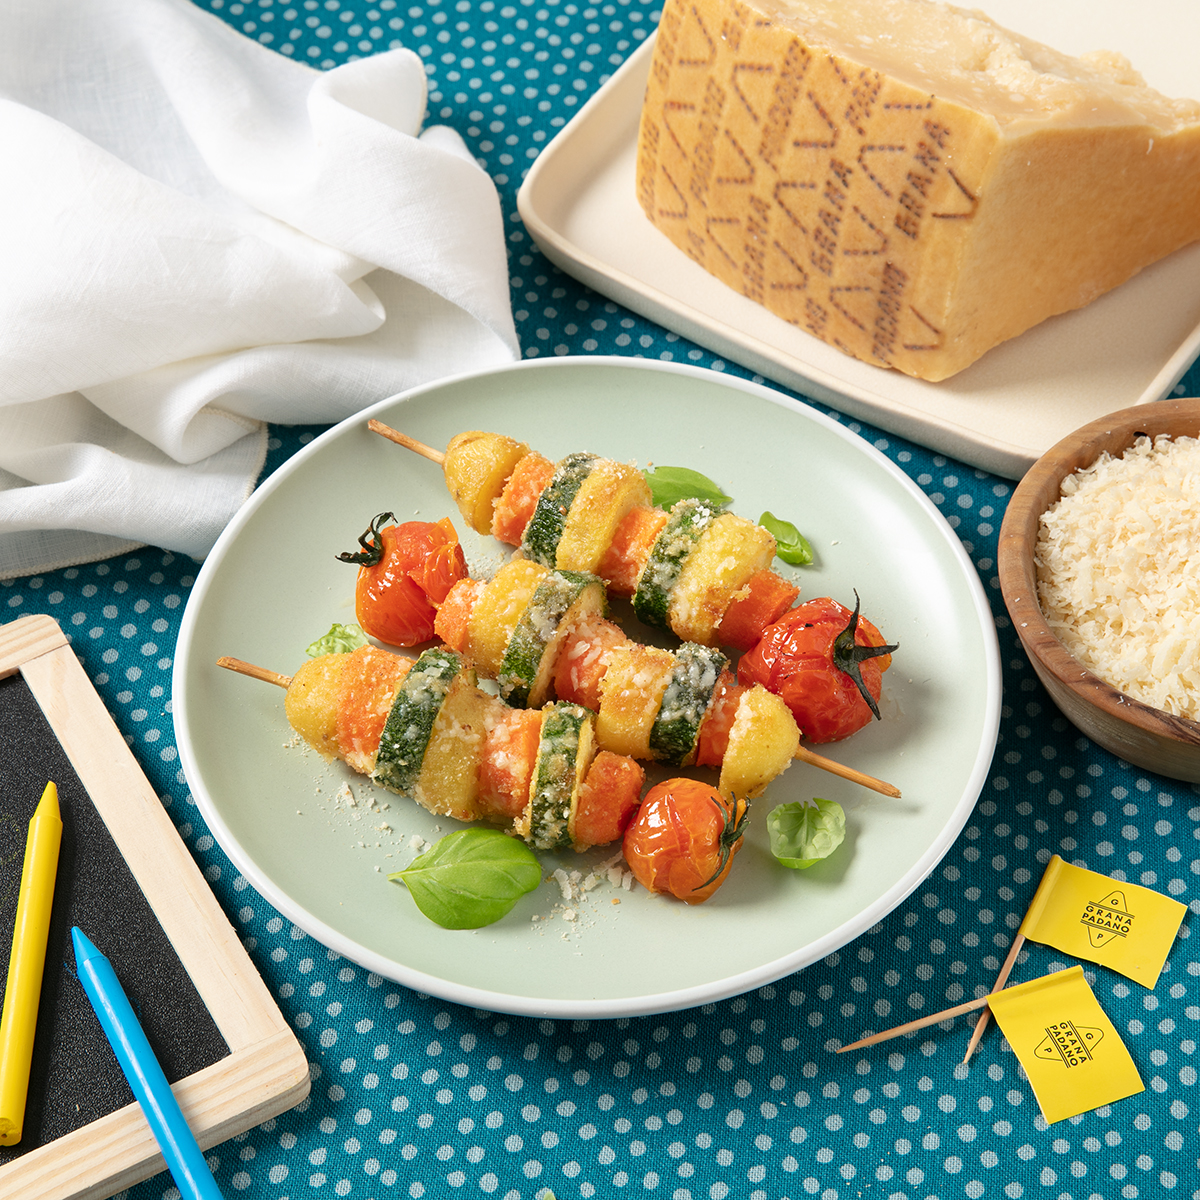 Baked vegetable, potato and Grana Padano skewers